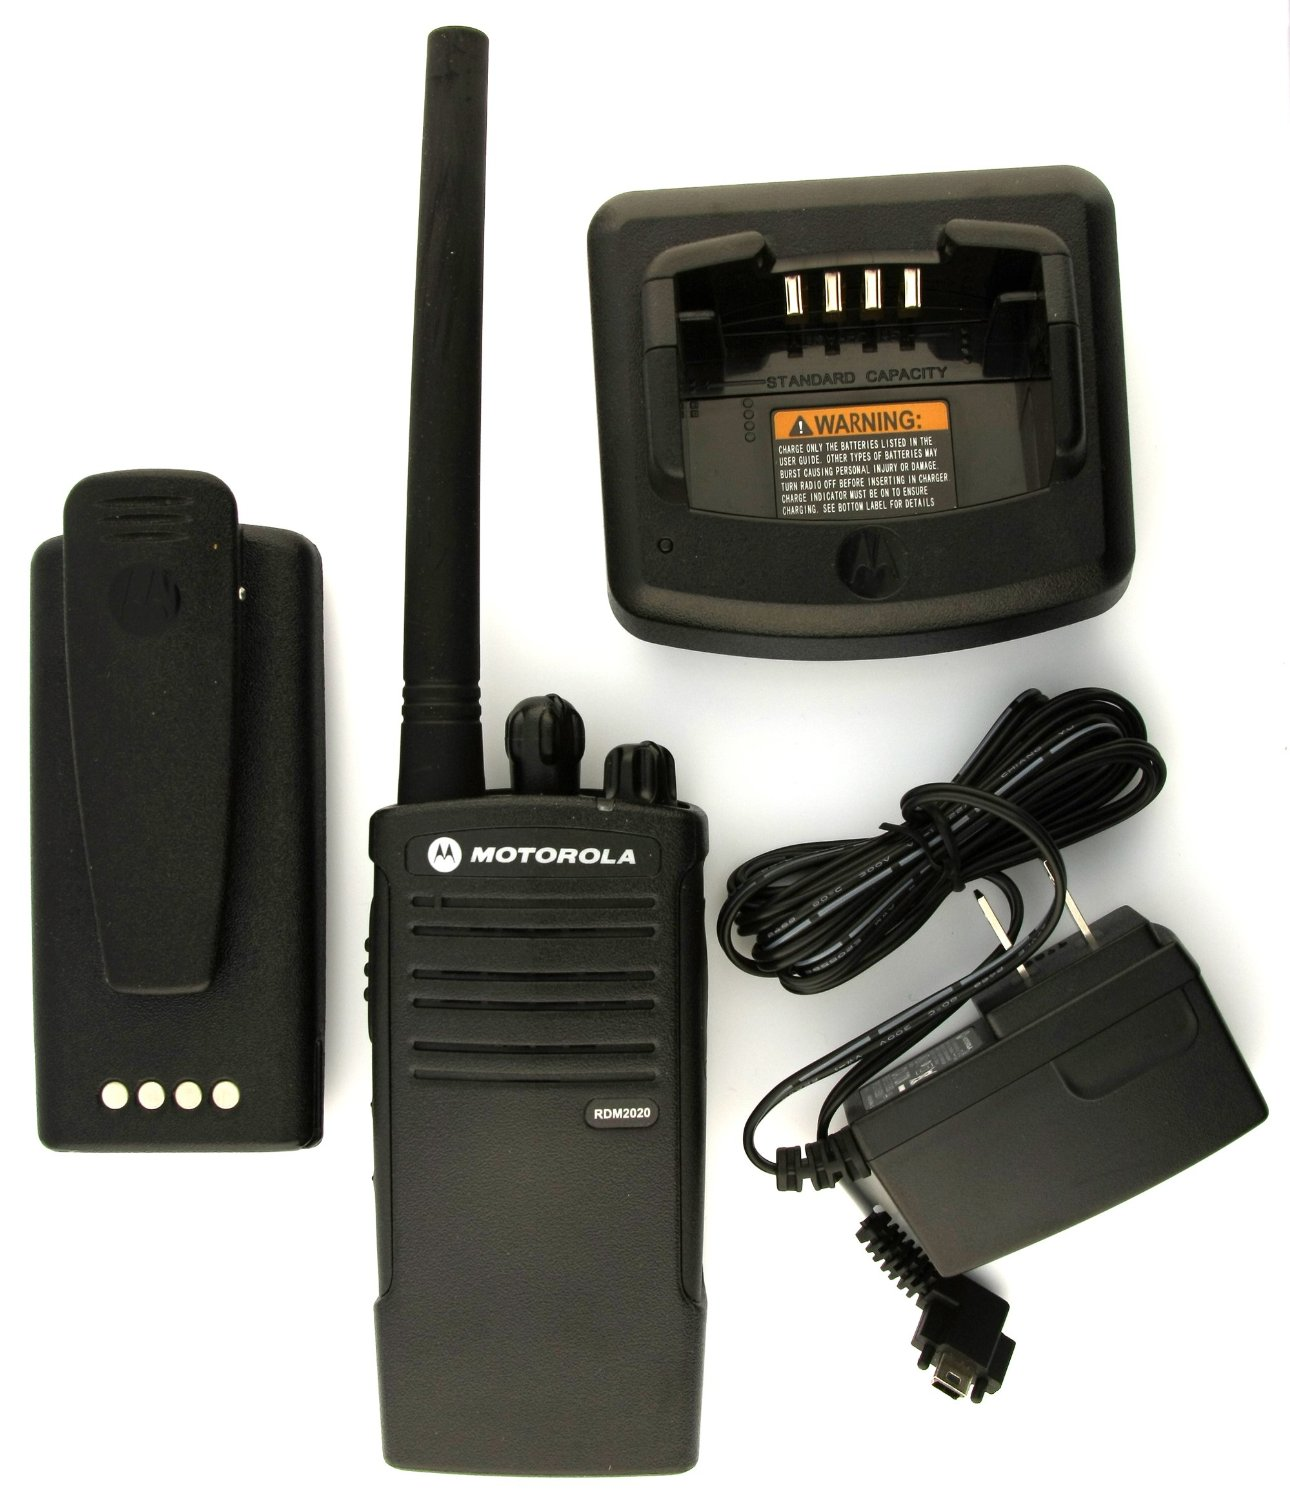 Motorola Rdm2020 Portable Two Channel Way Radio Wilcox Sound Belt Clip Ht And Communications